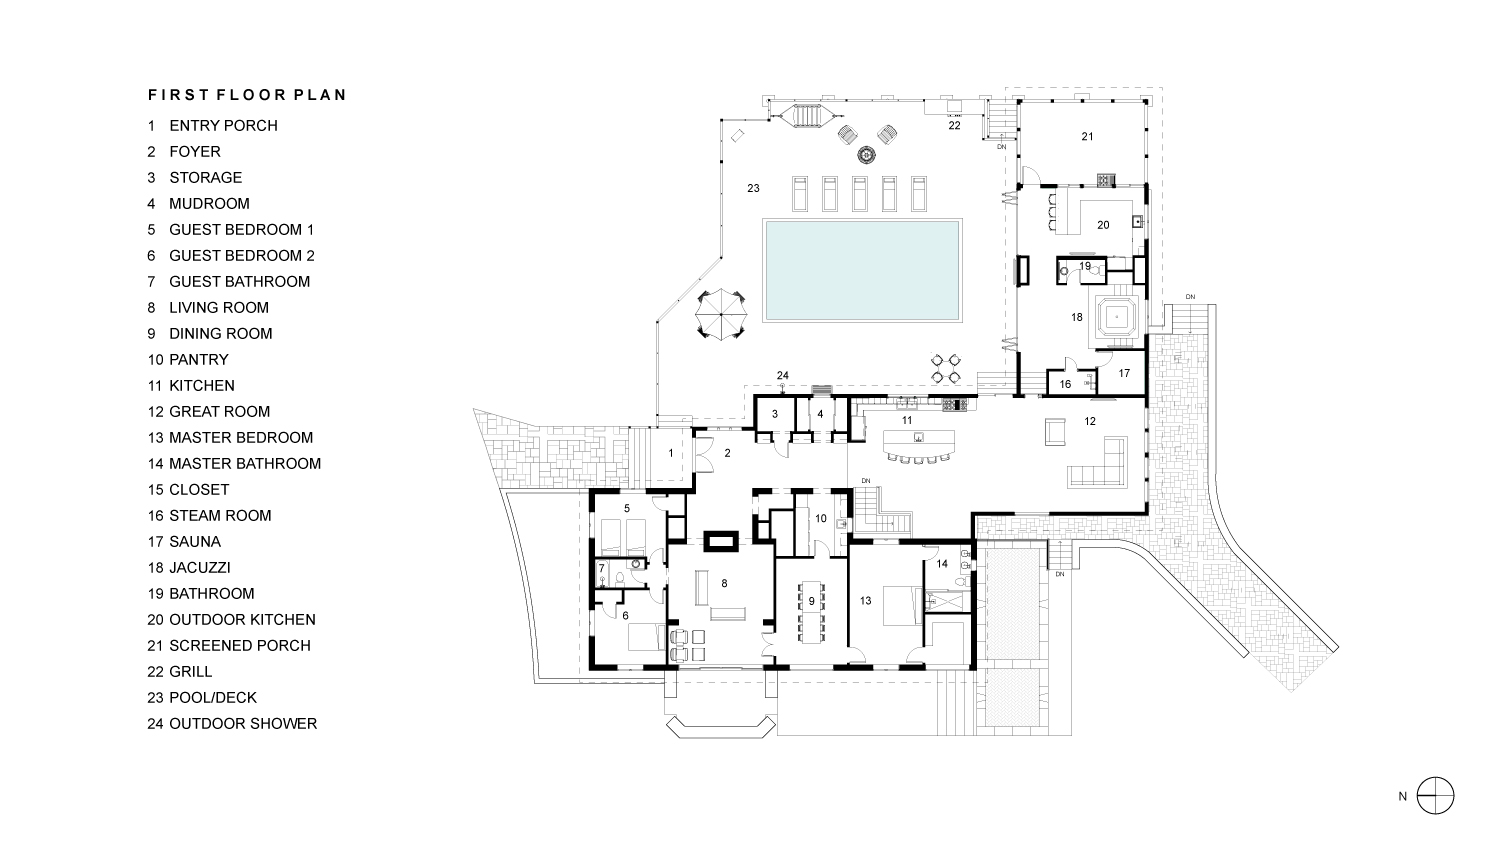 Sabatino First Floor Plan